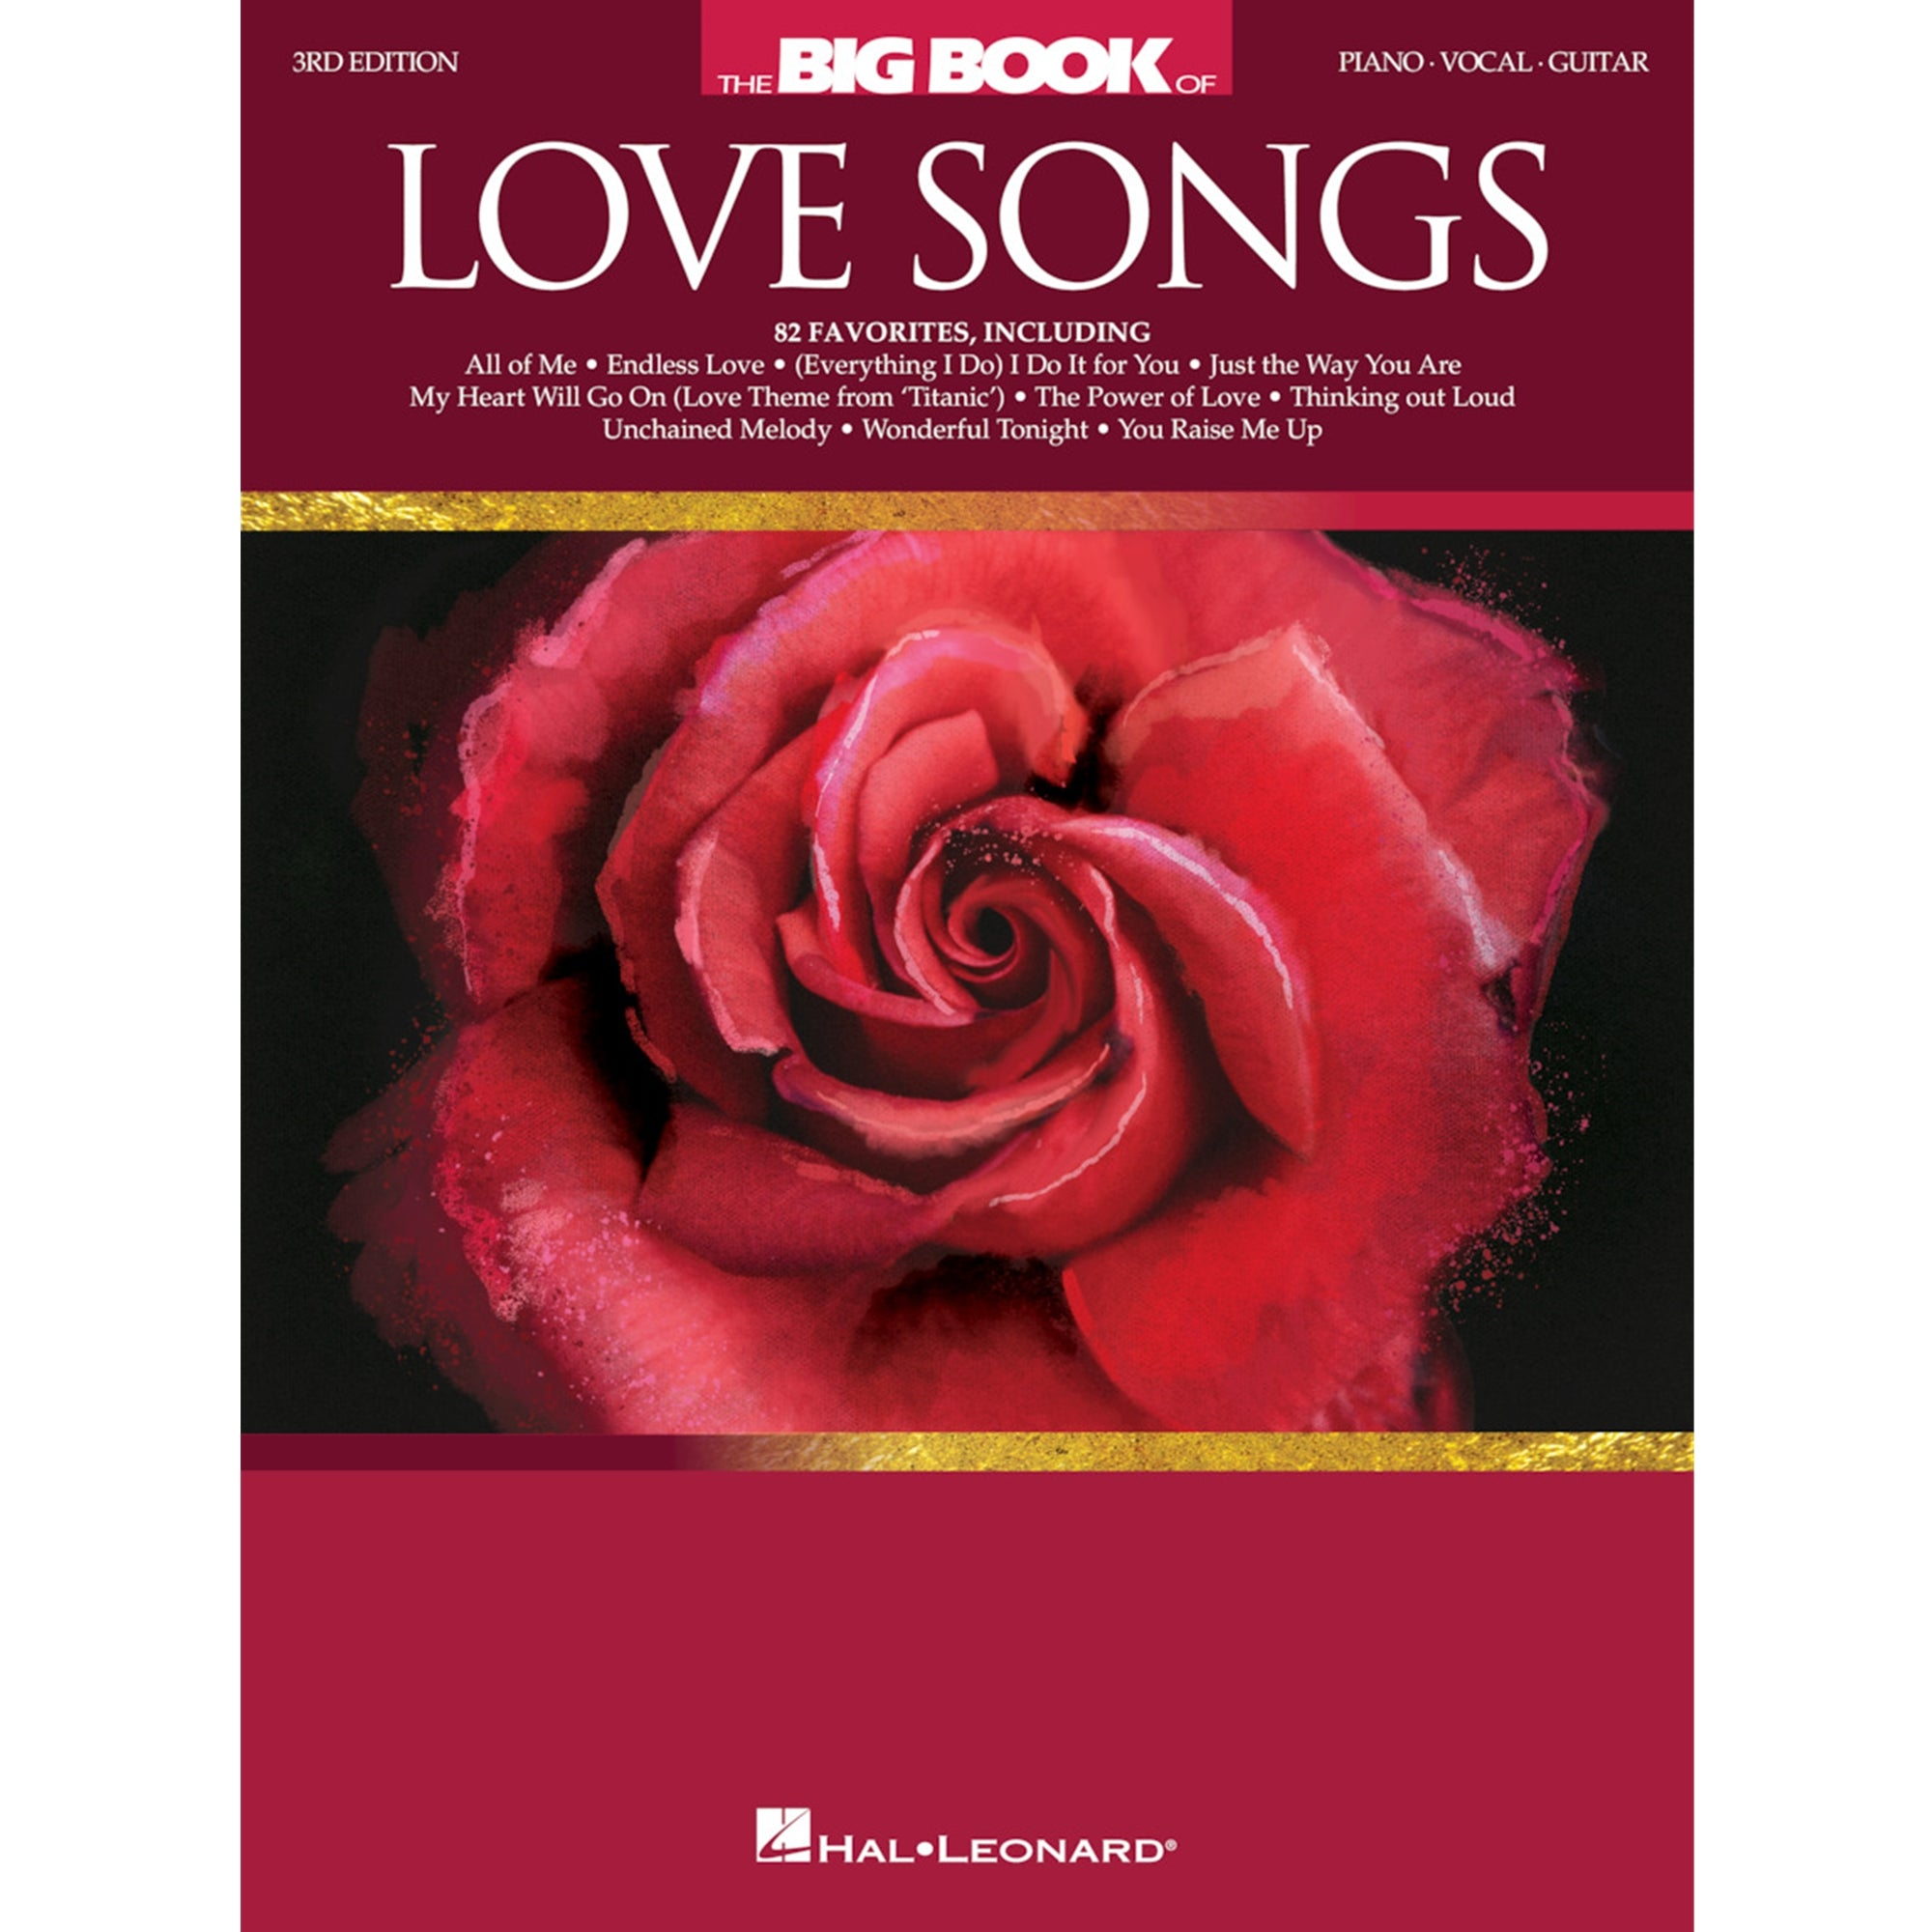 HAL LEONARD 257807 The Big Book of Love Songs - 3rd Edition